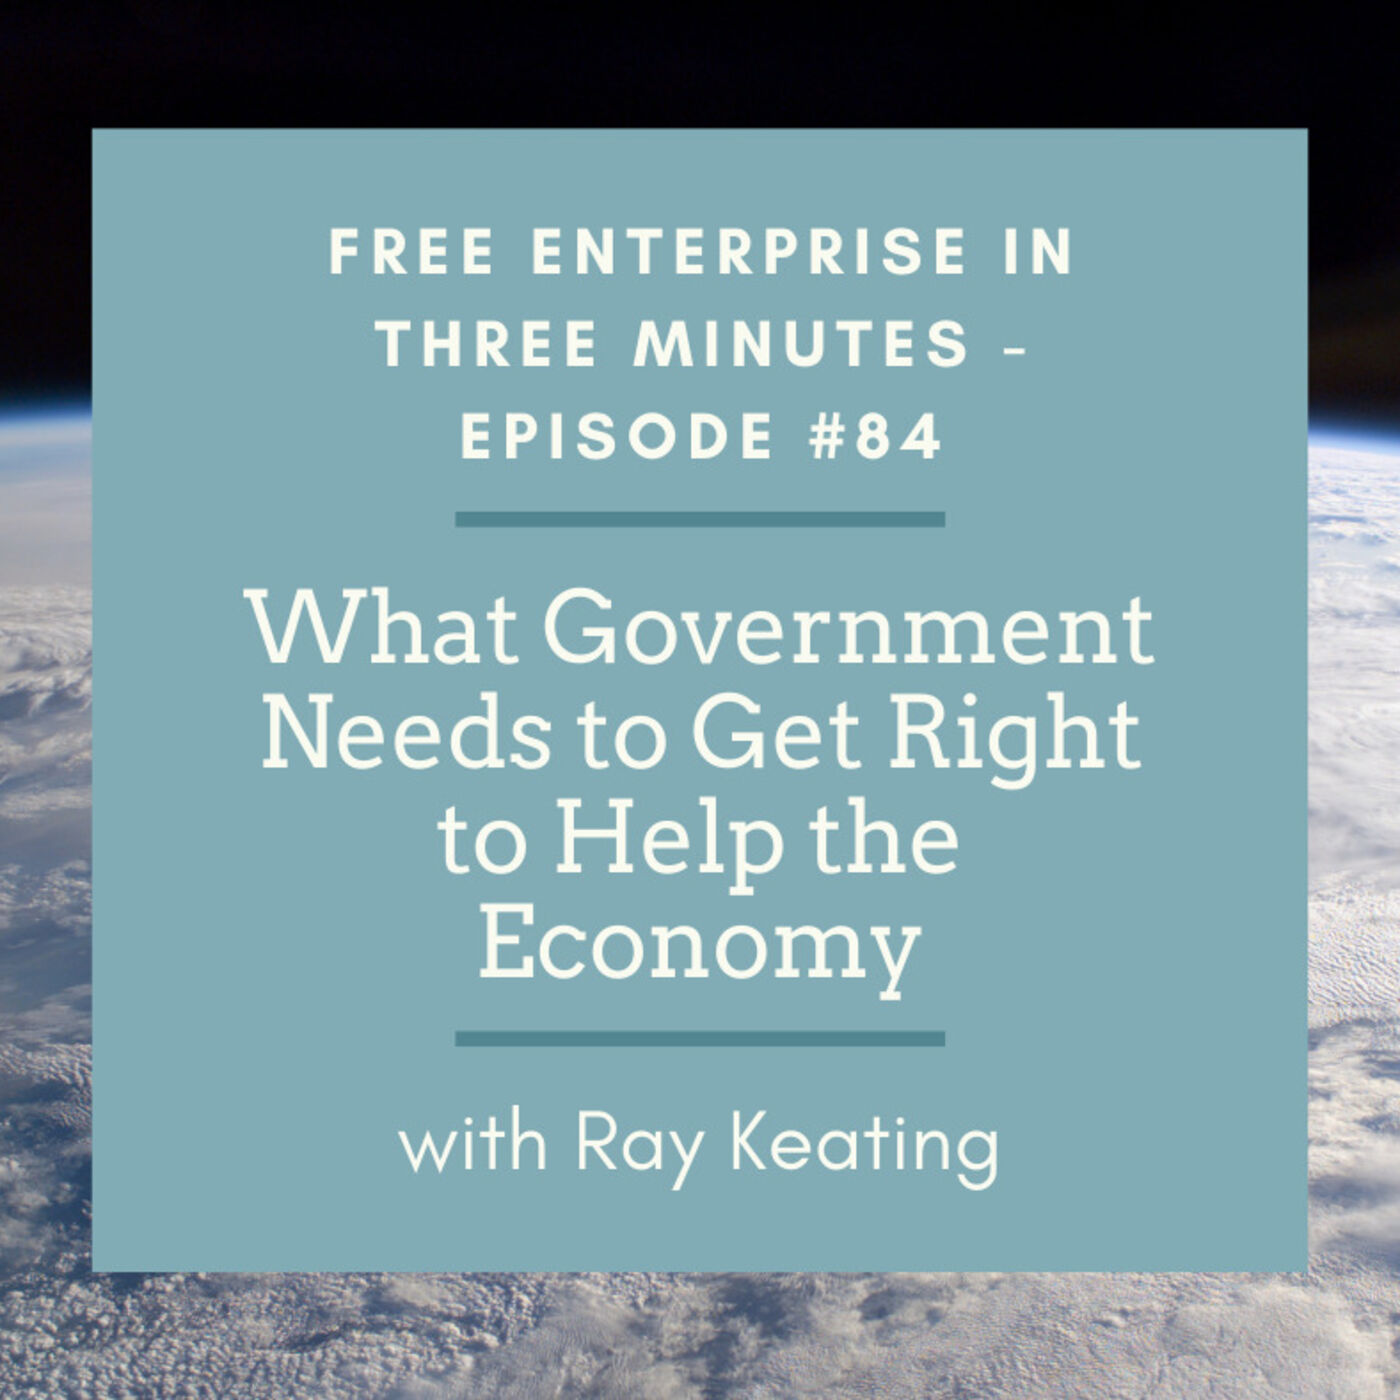 Episode #84: What Government Needs to Get Right to Help the Economy